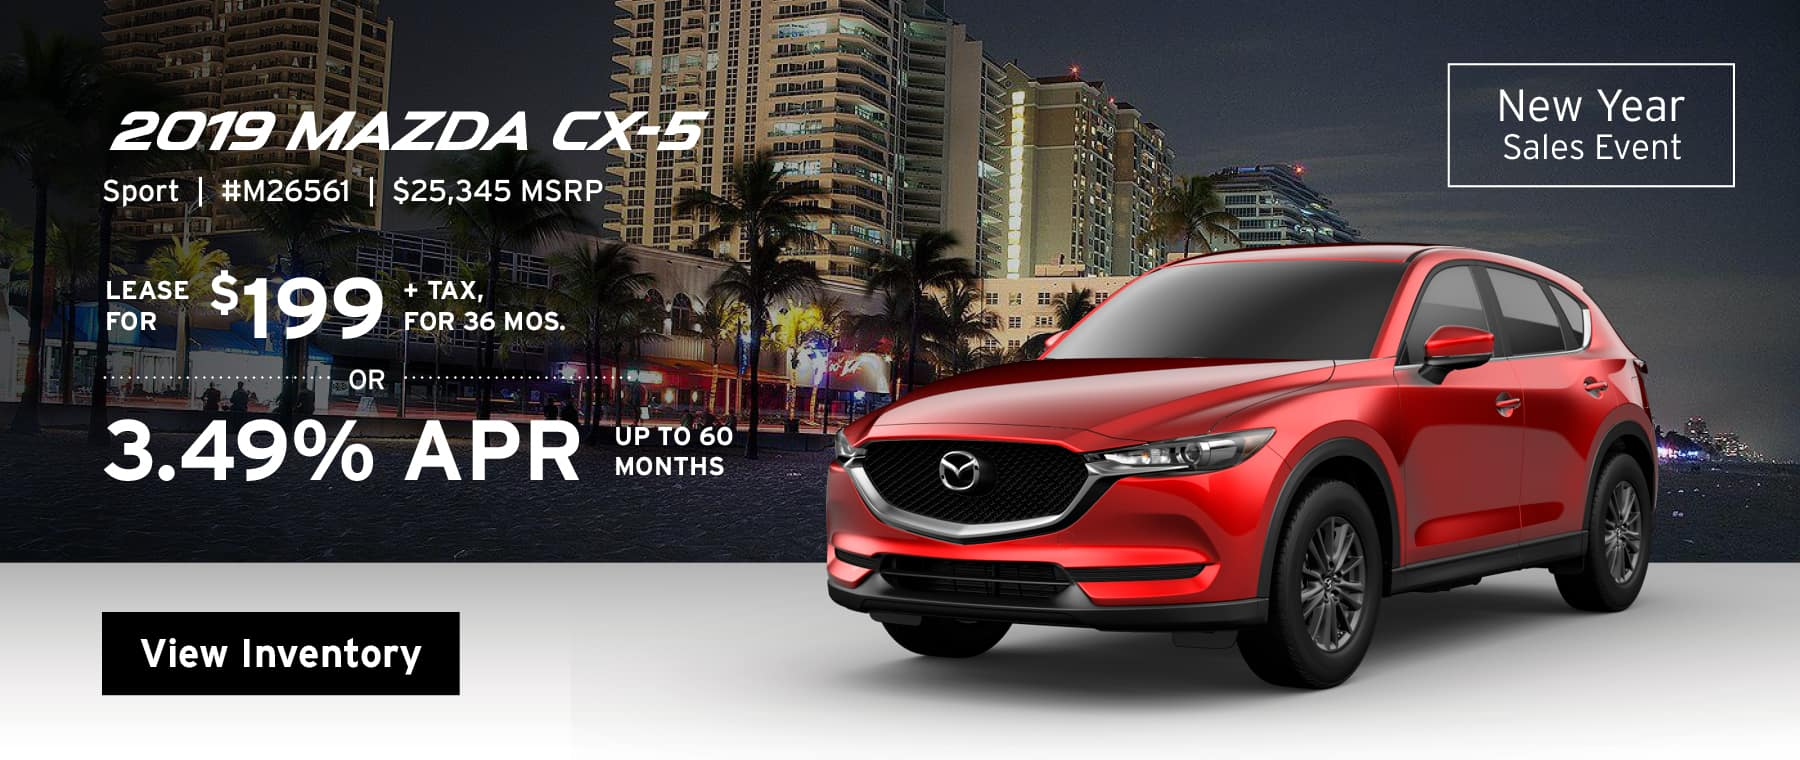 Lease the 2018 Mazda CX-5 Sport for $199, plus tax for 36 months, or 3.49% APR up to 60 months.